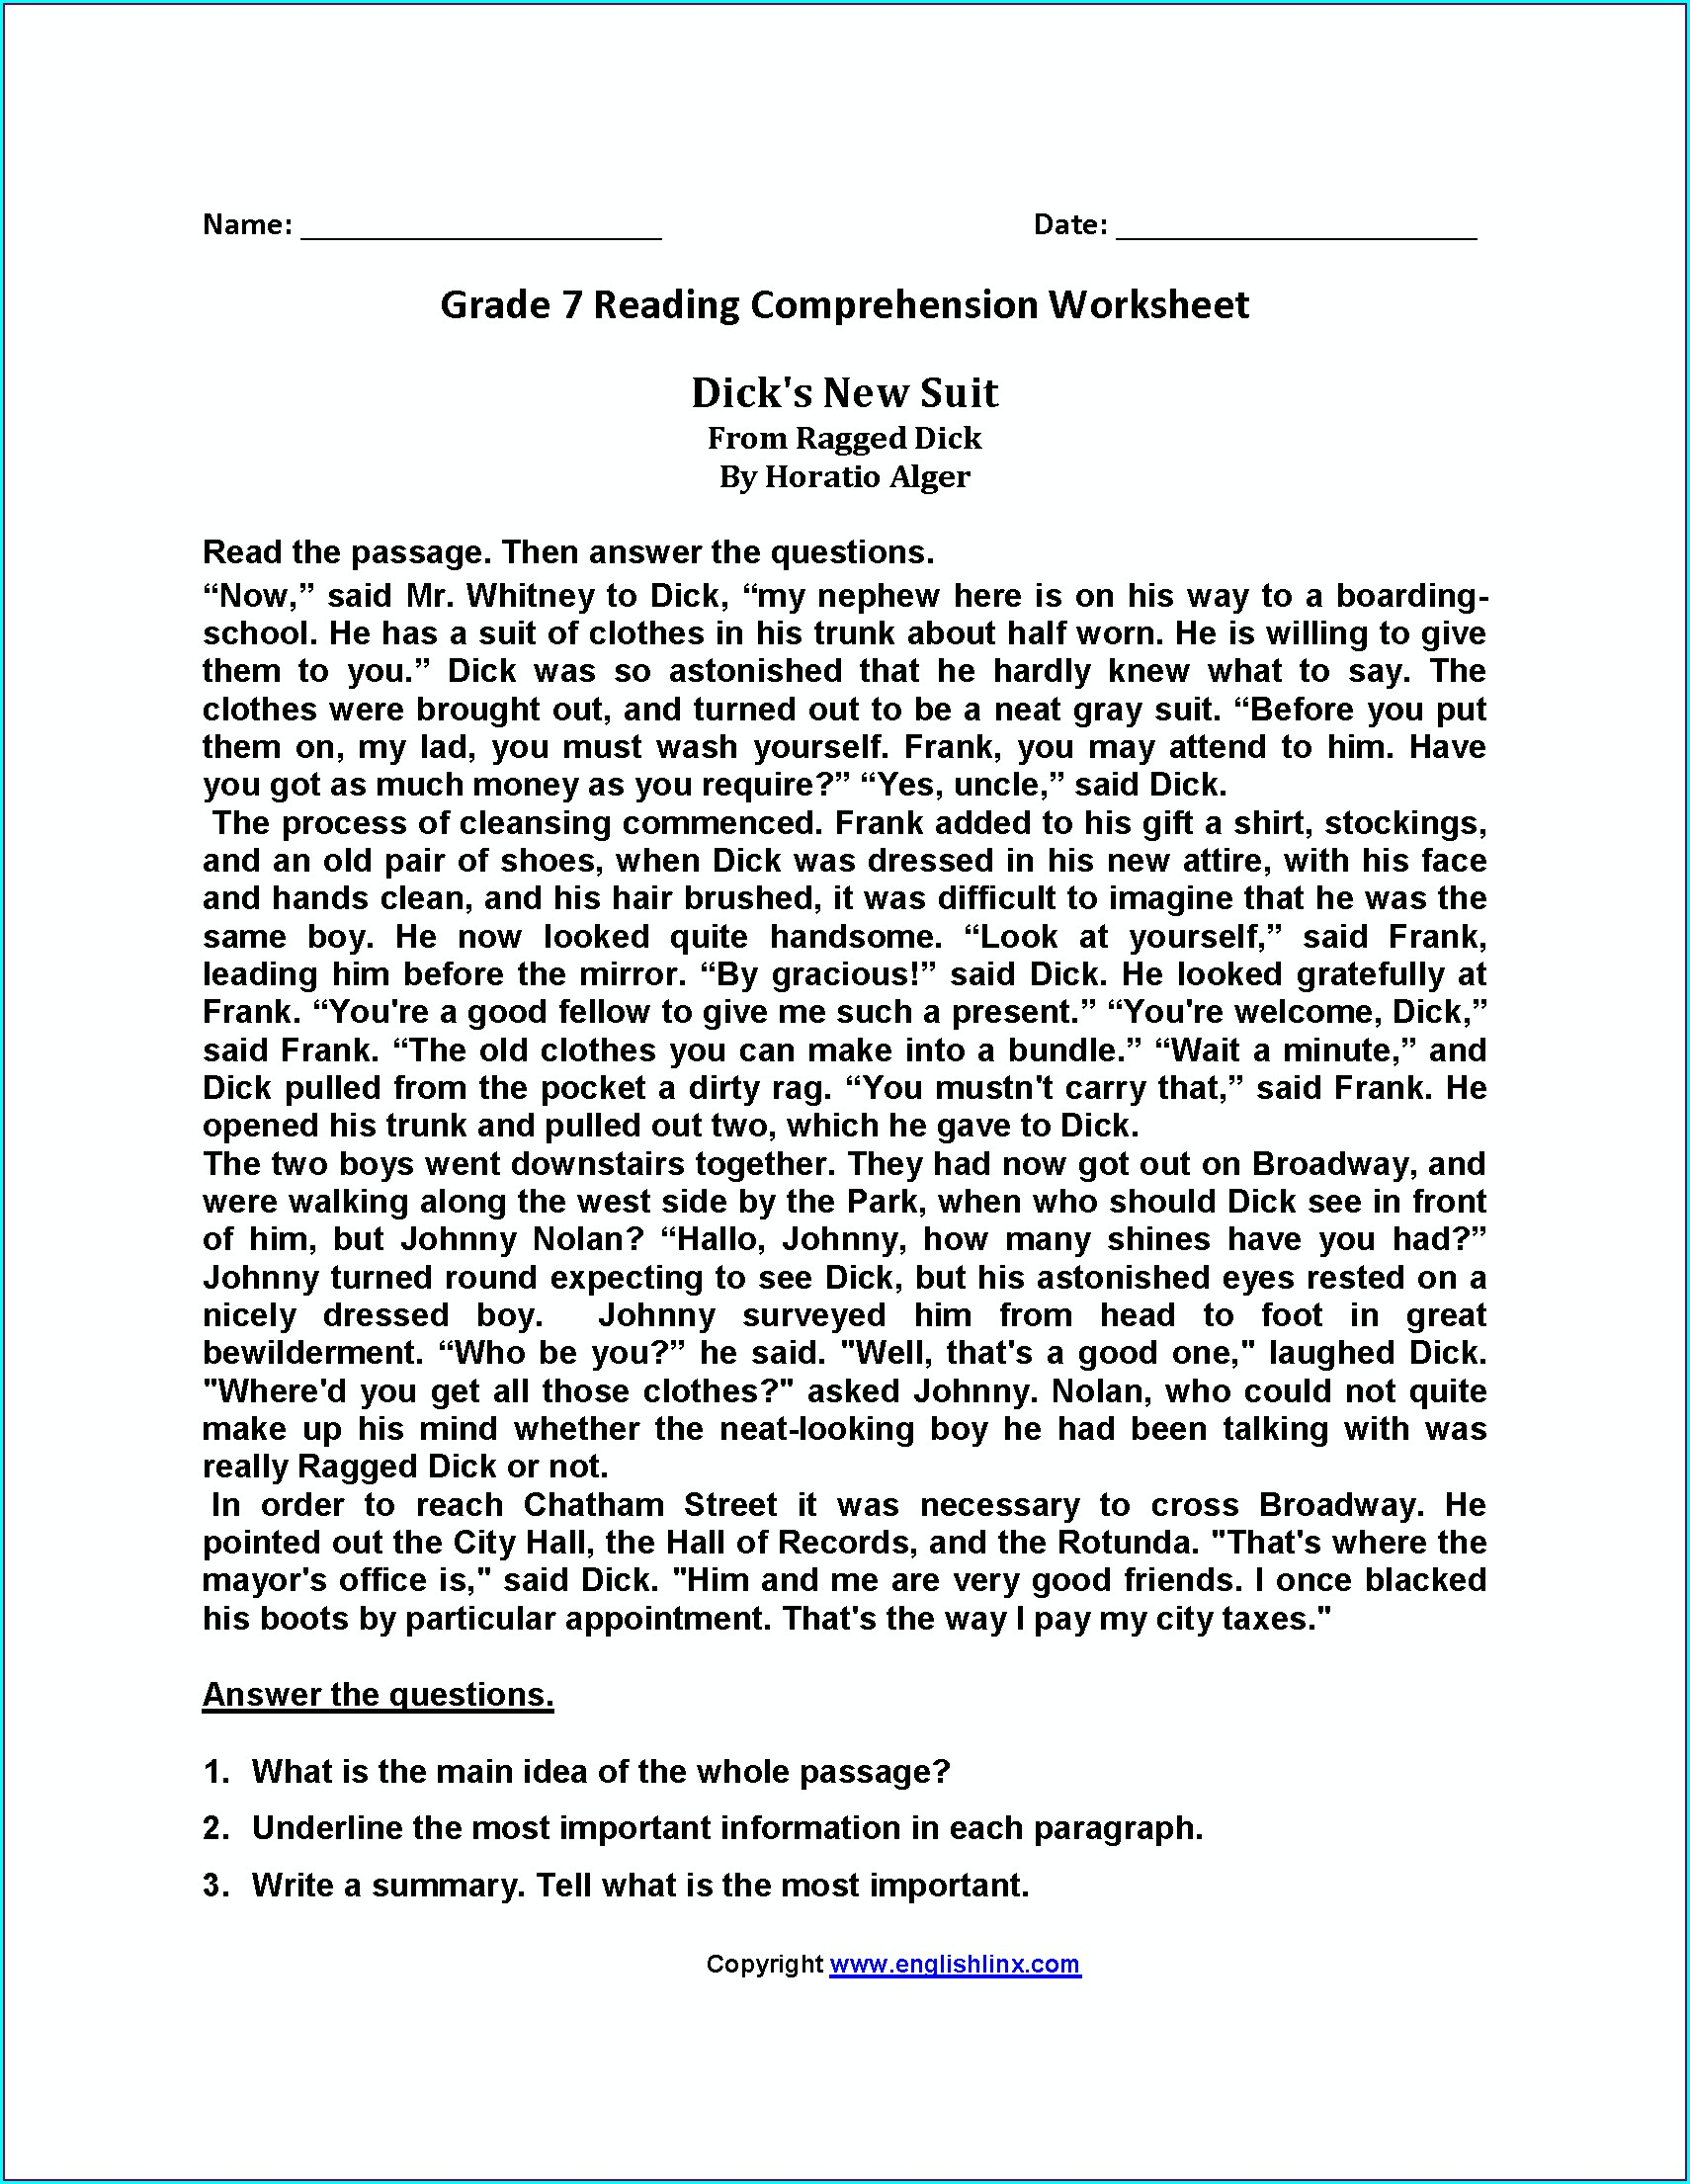 Reading Comprehension English Worksheet For Grade 7